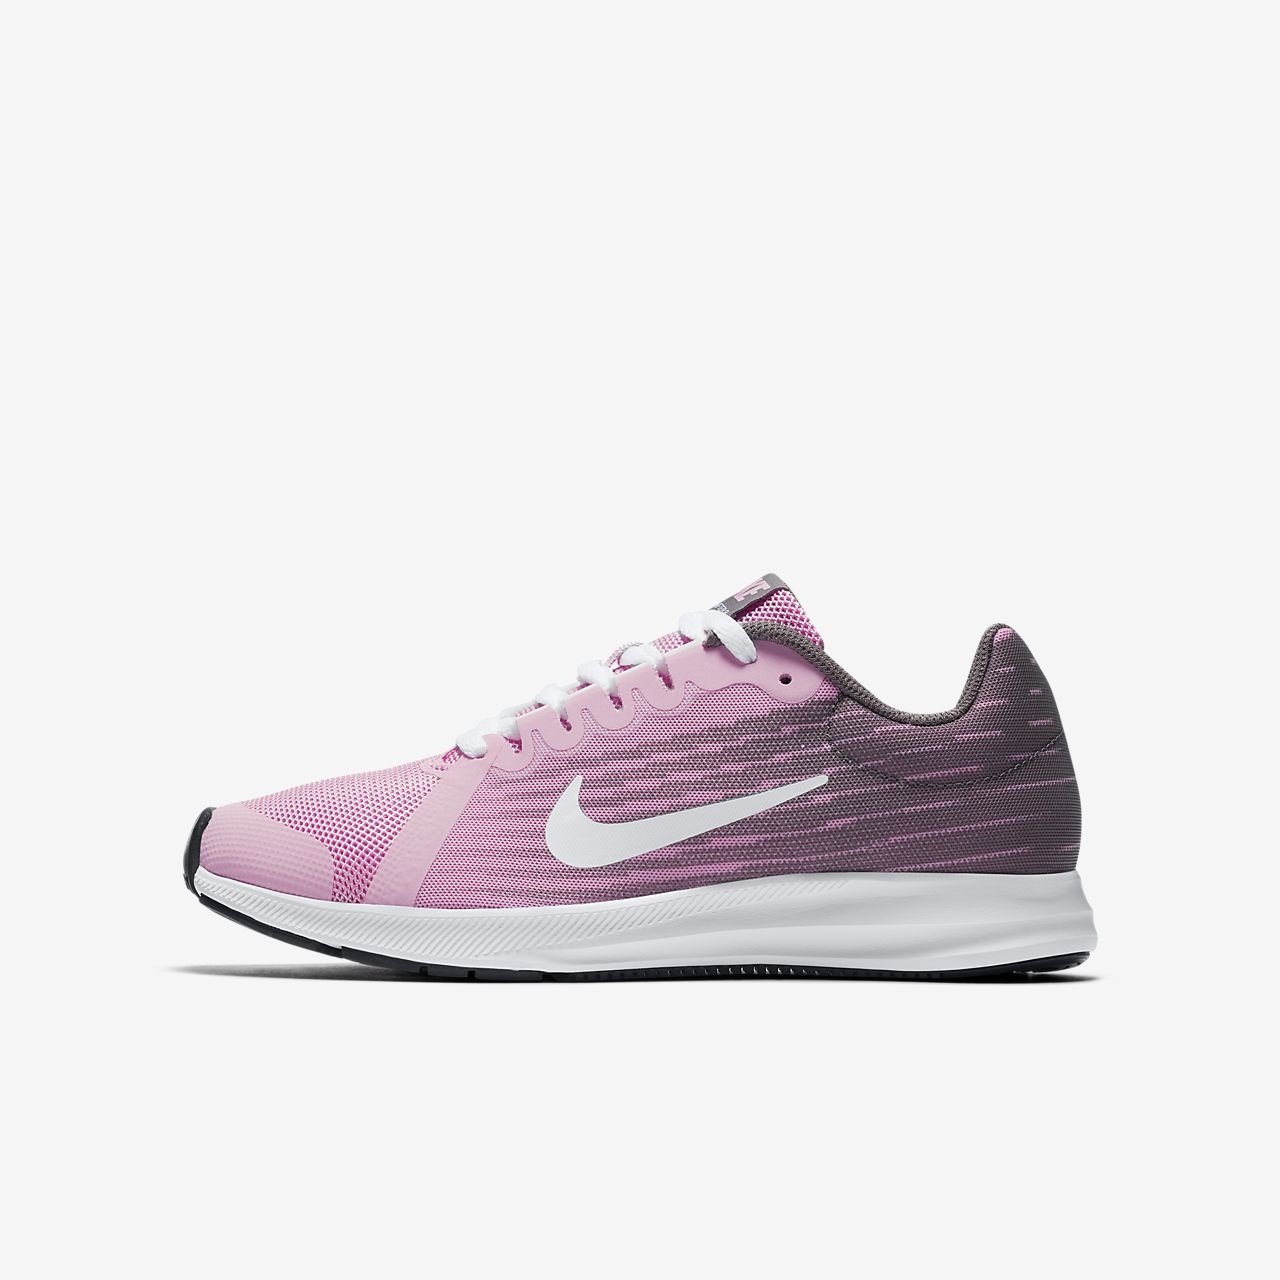 7bca6e00a61571 Nike Downshifter 8 Older Kids  Running Shoe. Nike.com AU